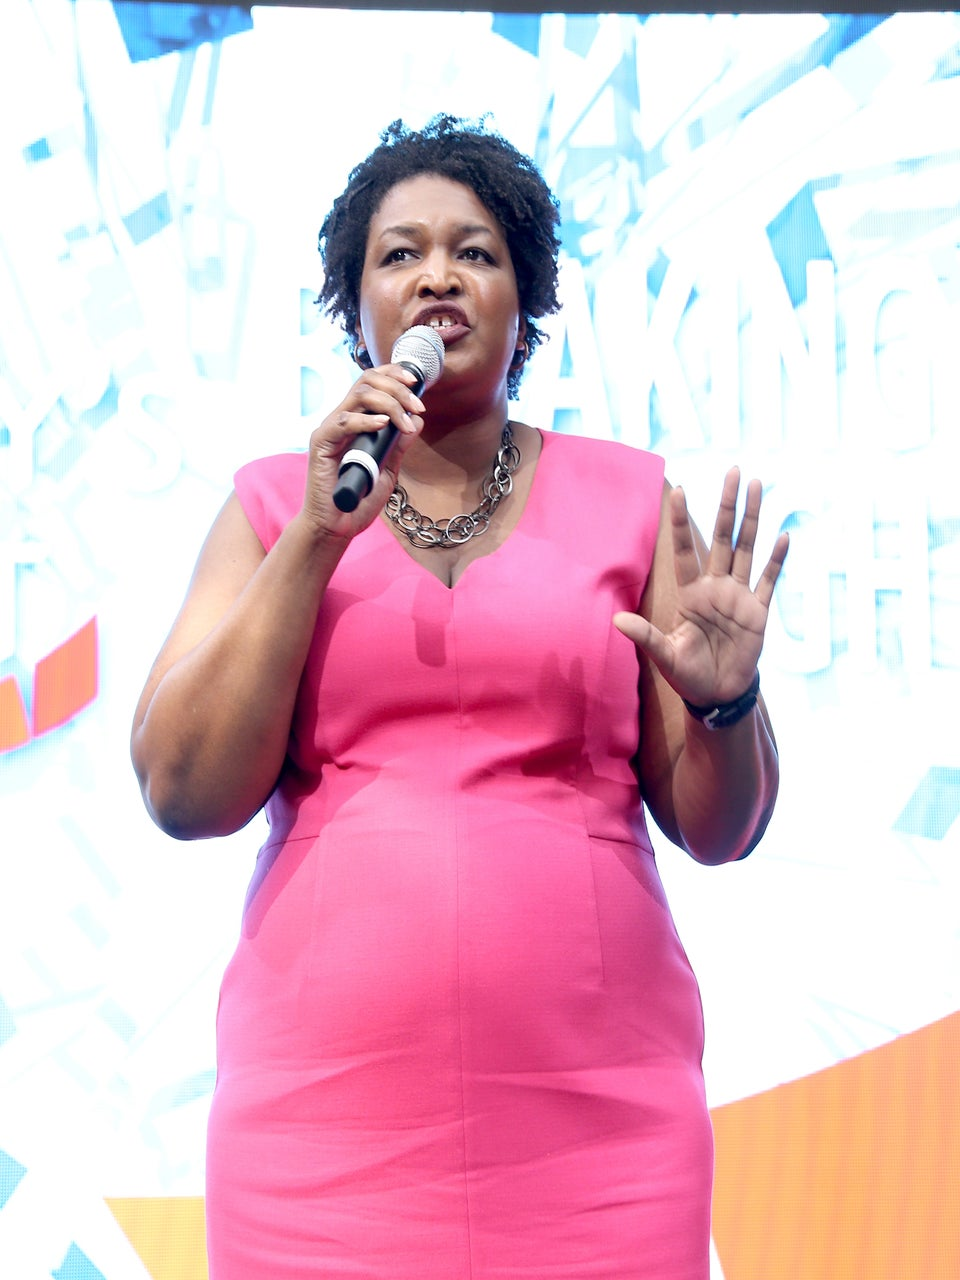 The Quick Read: Stacey Abrams Is One Election Closer To Becoming First Black Governor In The U.S.